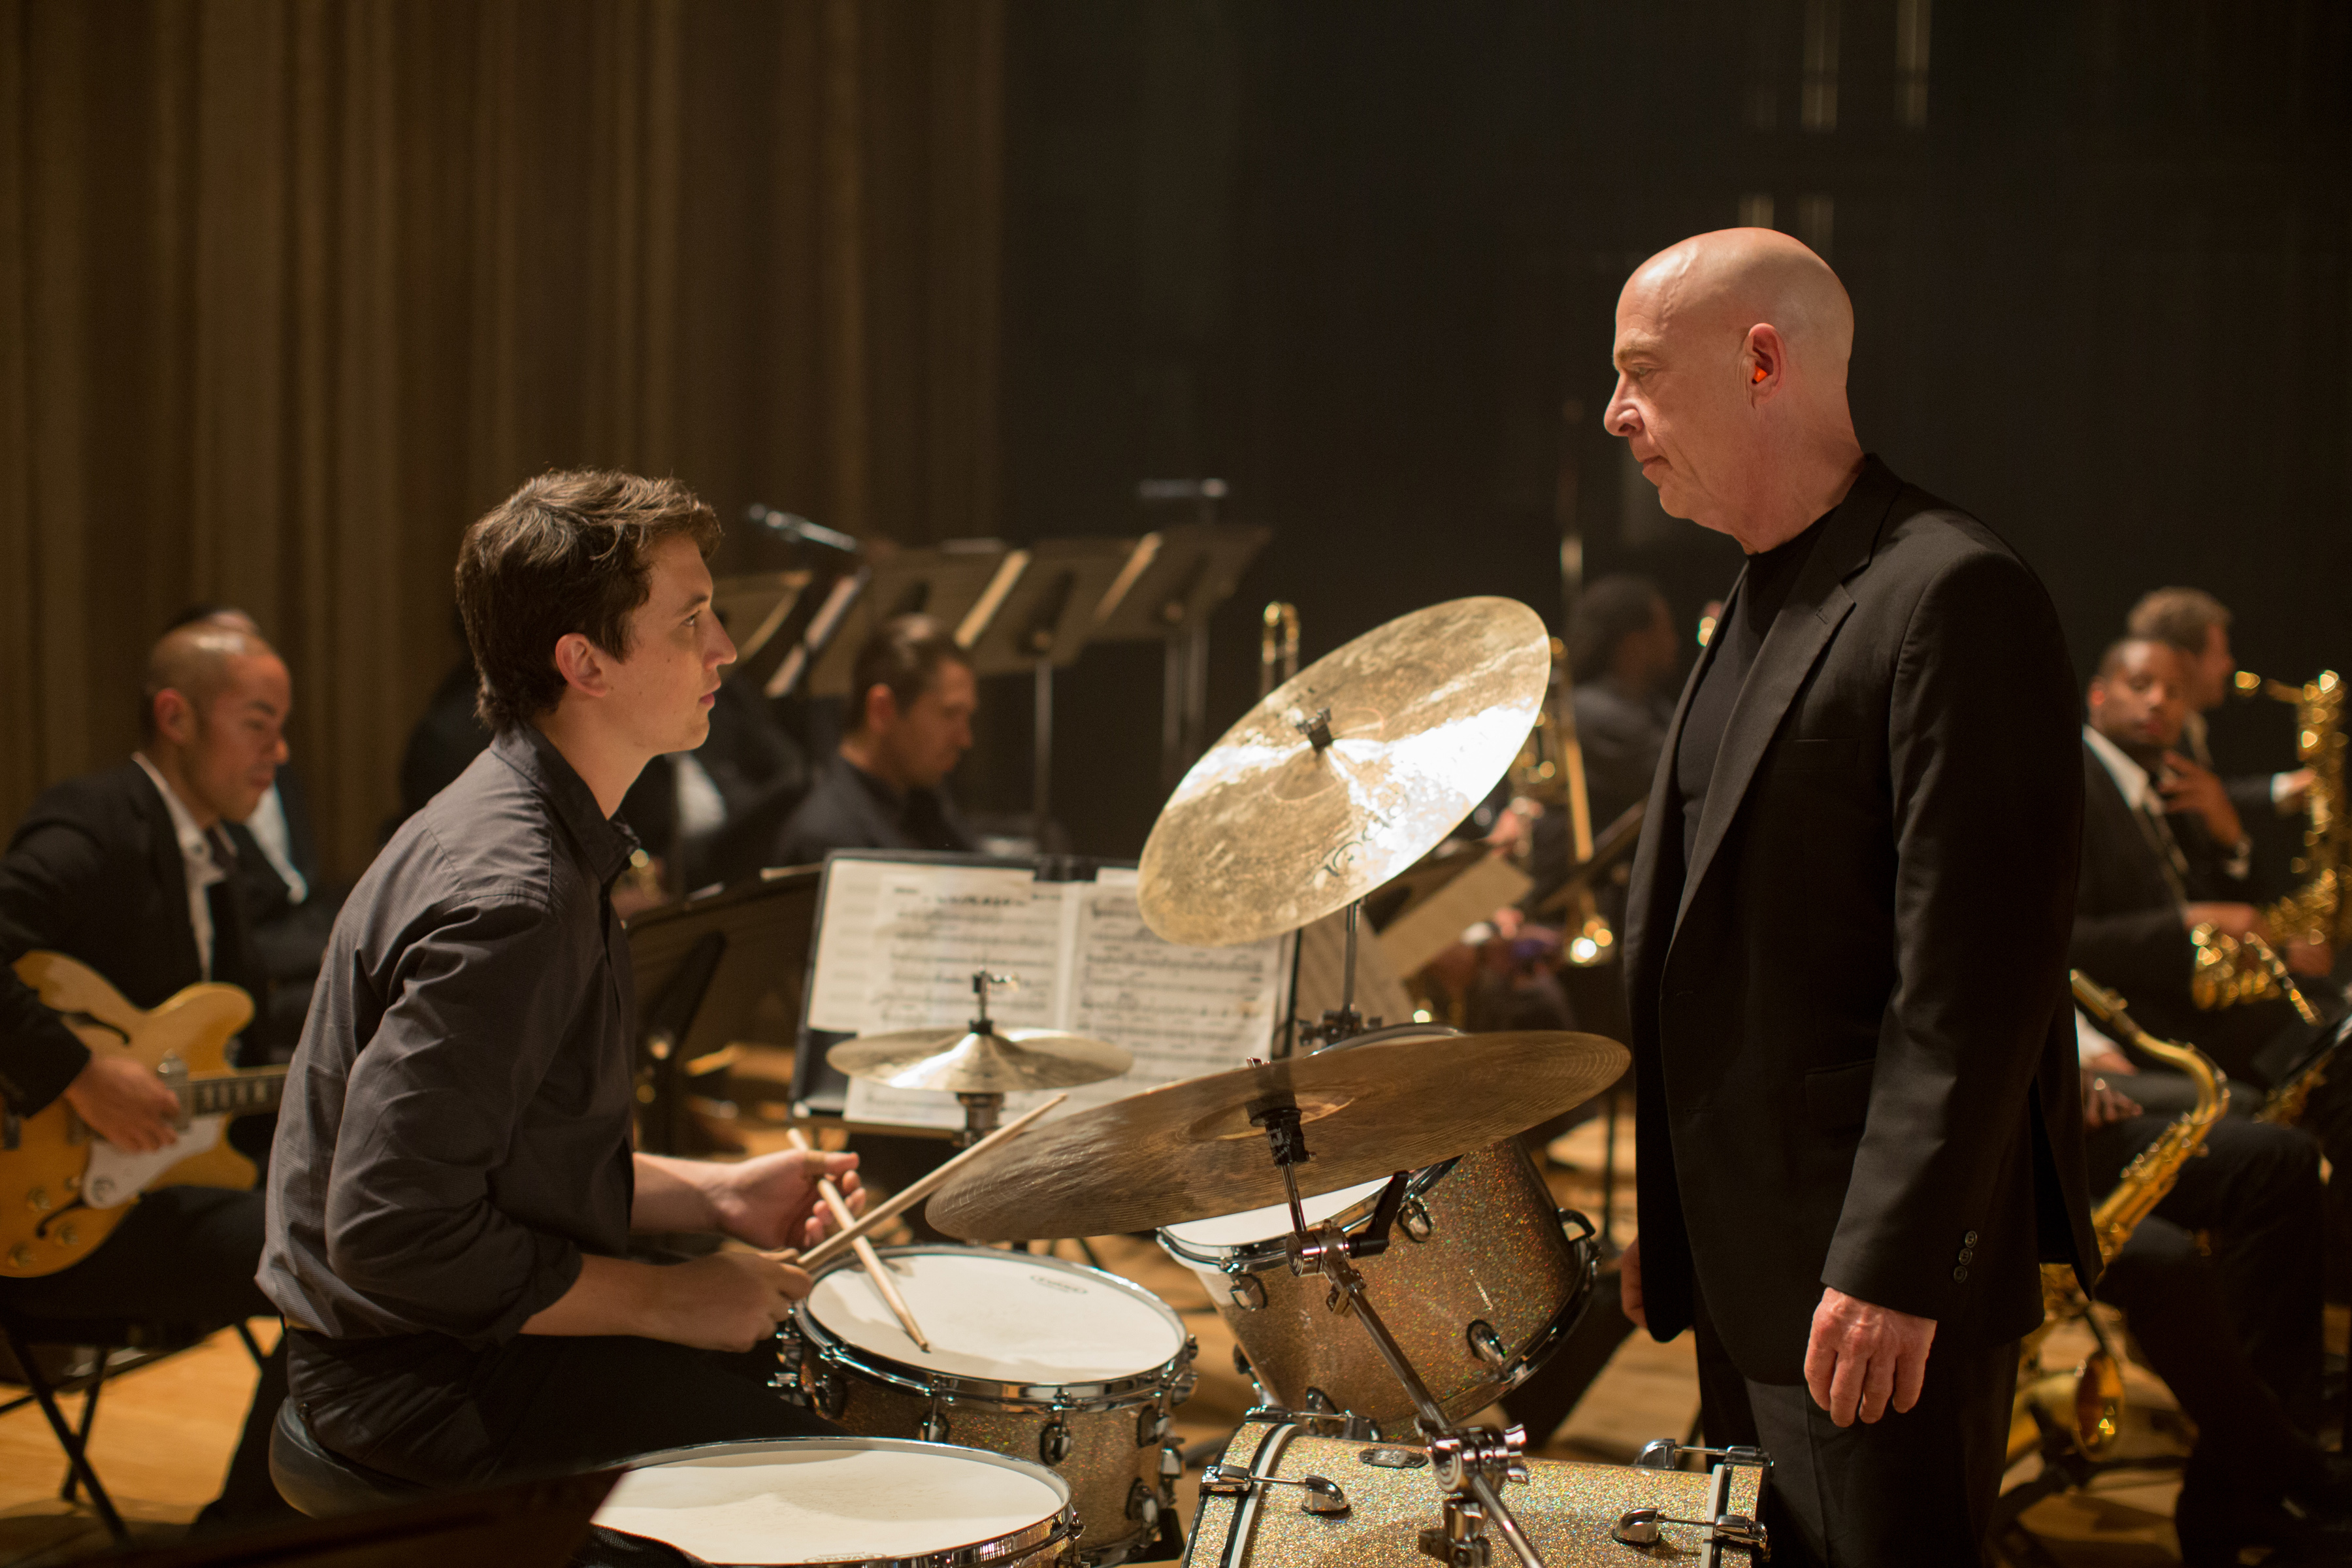 Damien chazelle on what is and isn t ambiguous about whiplash the